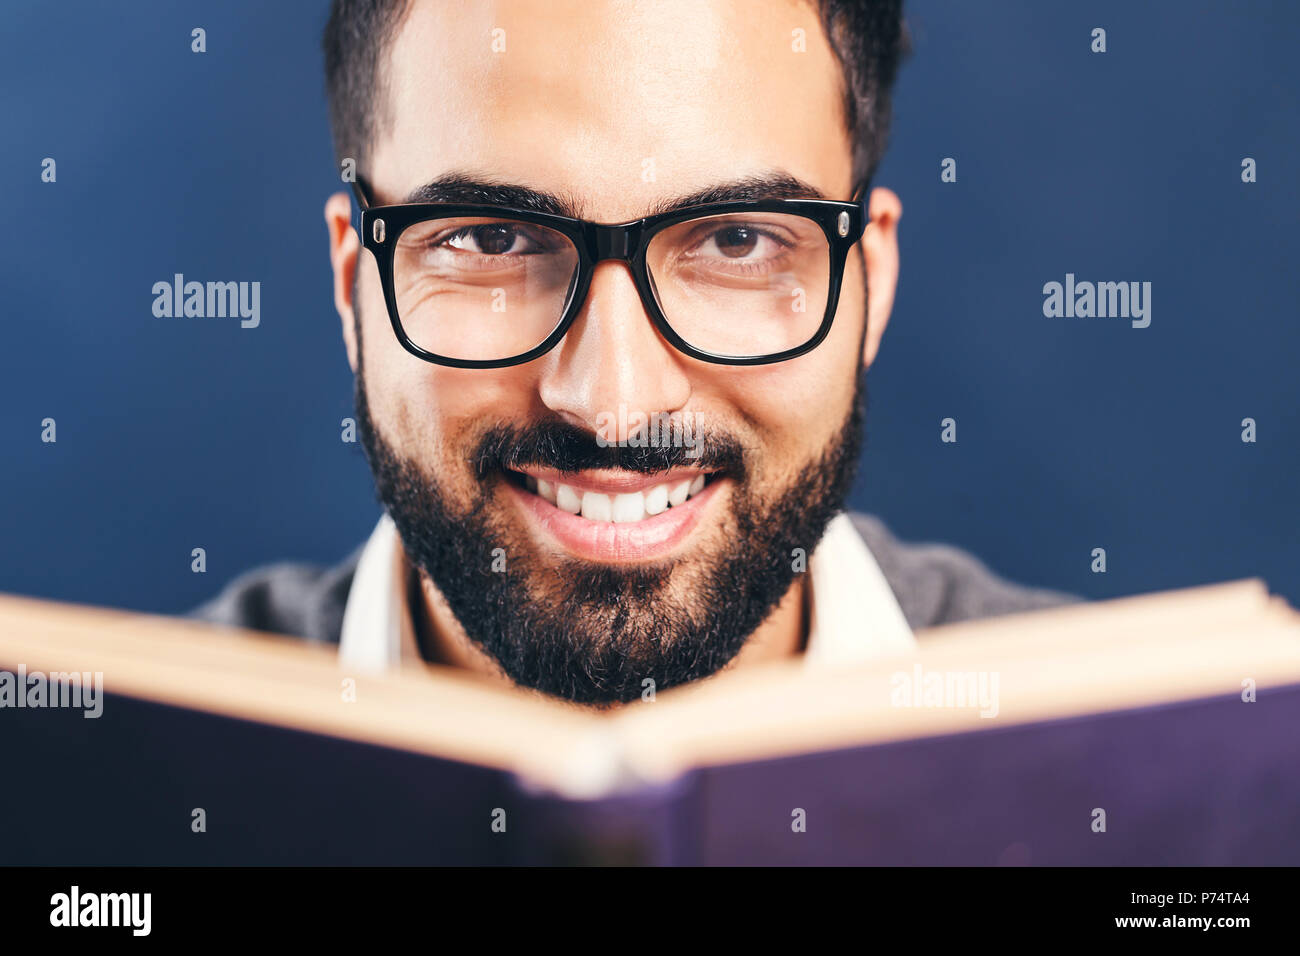 Portrait of eastern arab bearded man reading book before blue background - Stock Image